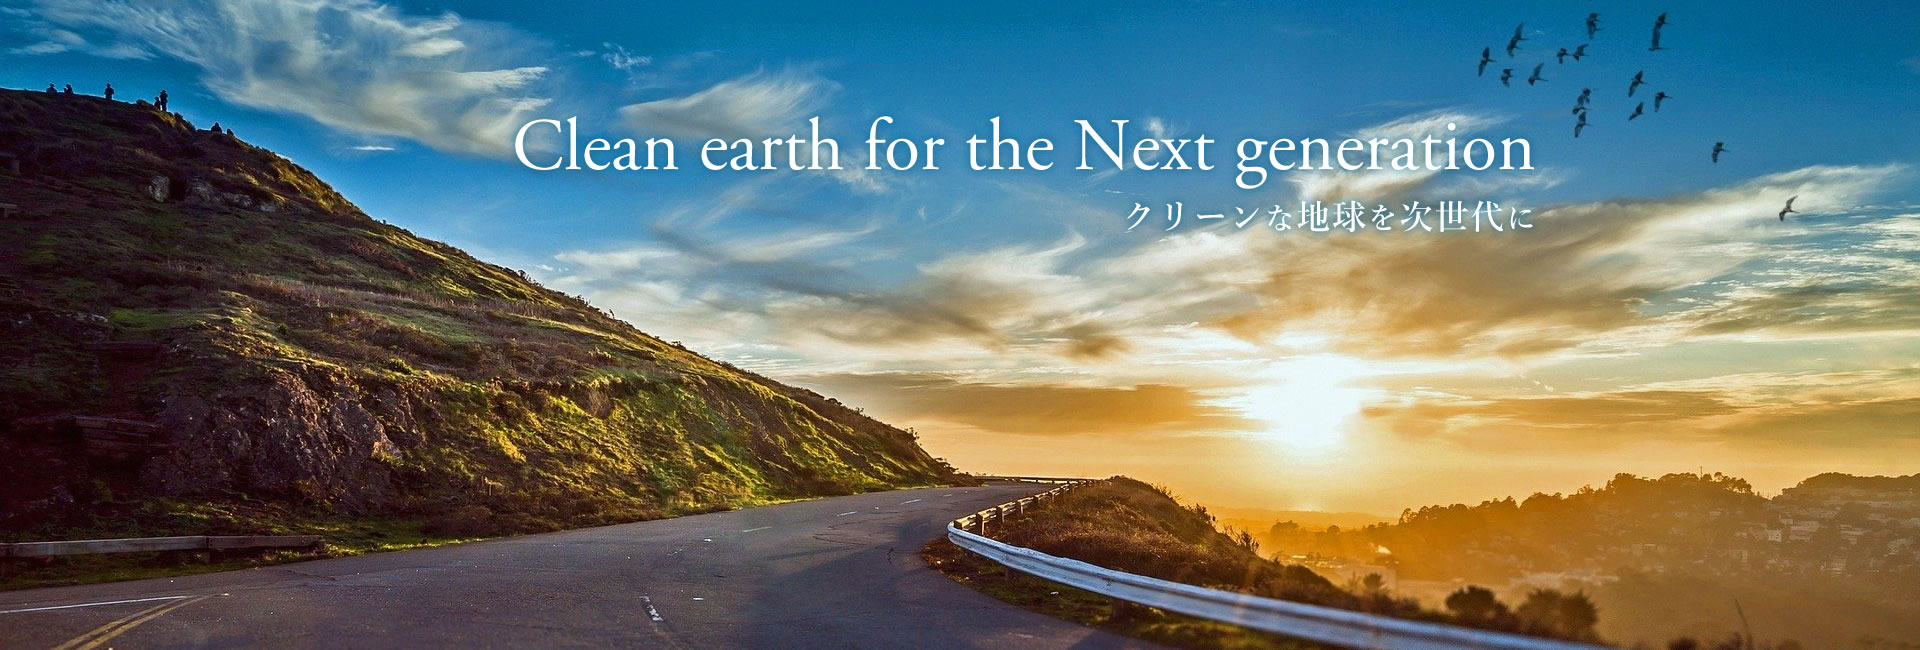 Clean earth for the Next generation - クリーンな地球を次世代に